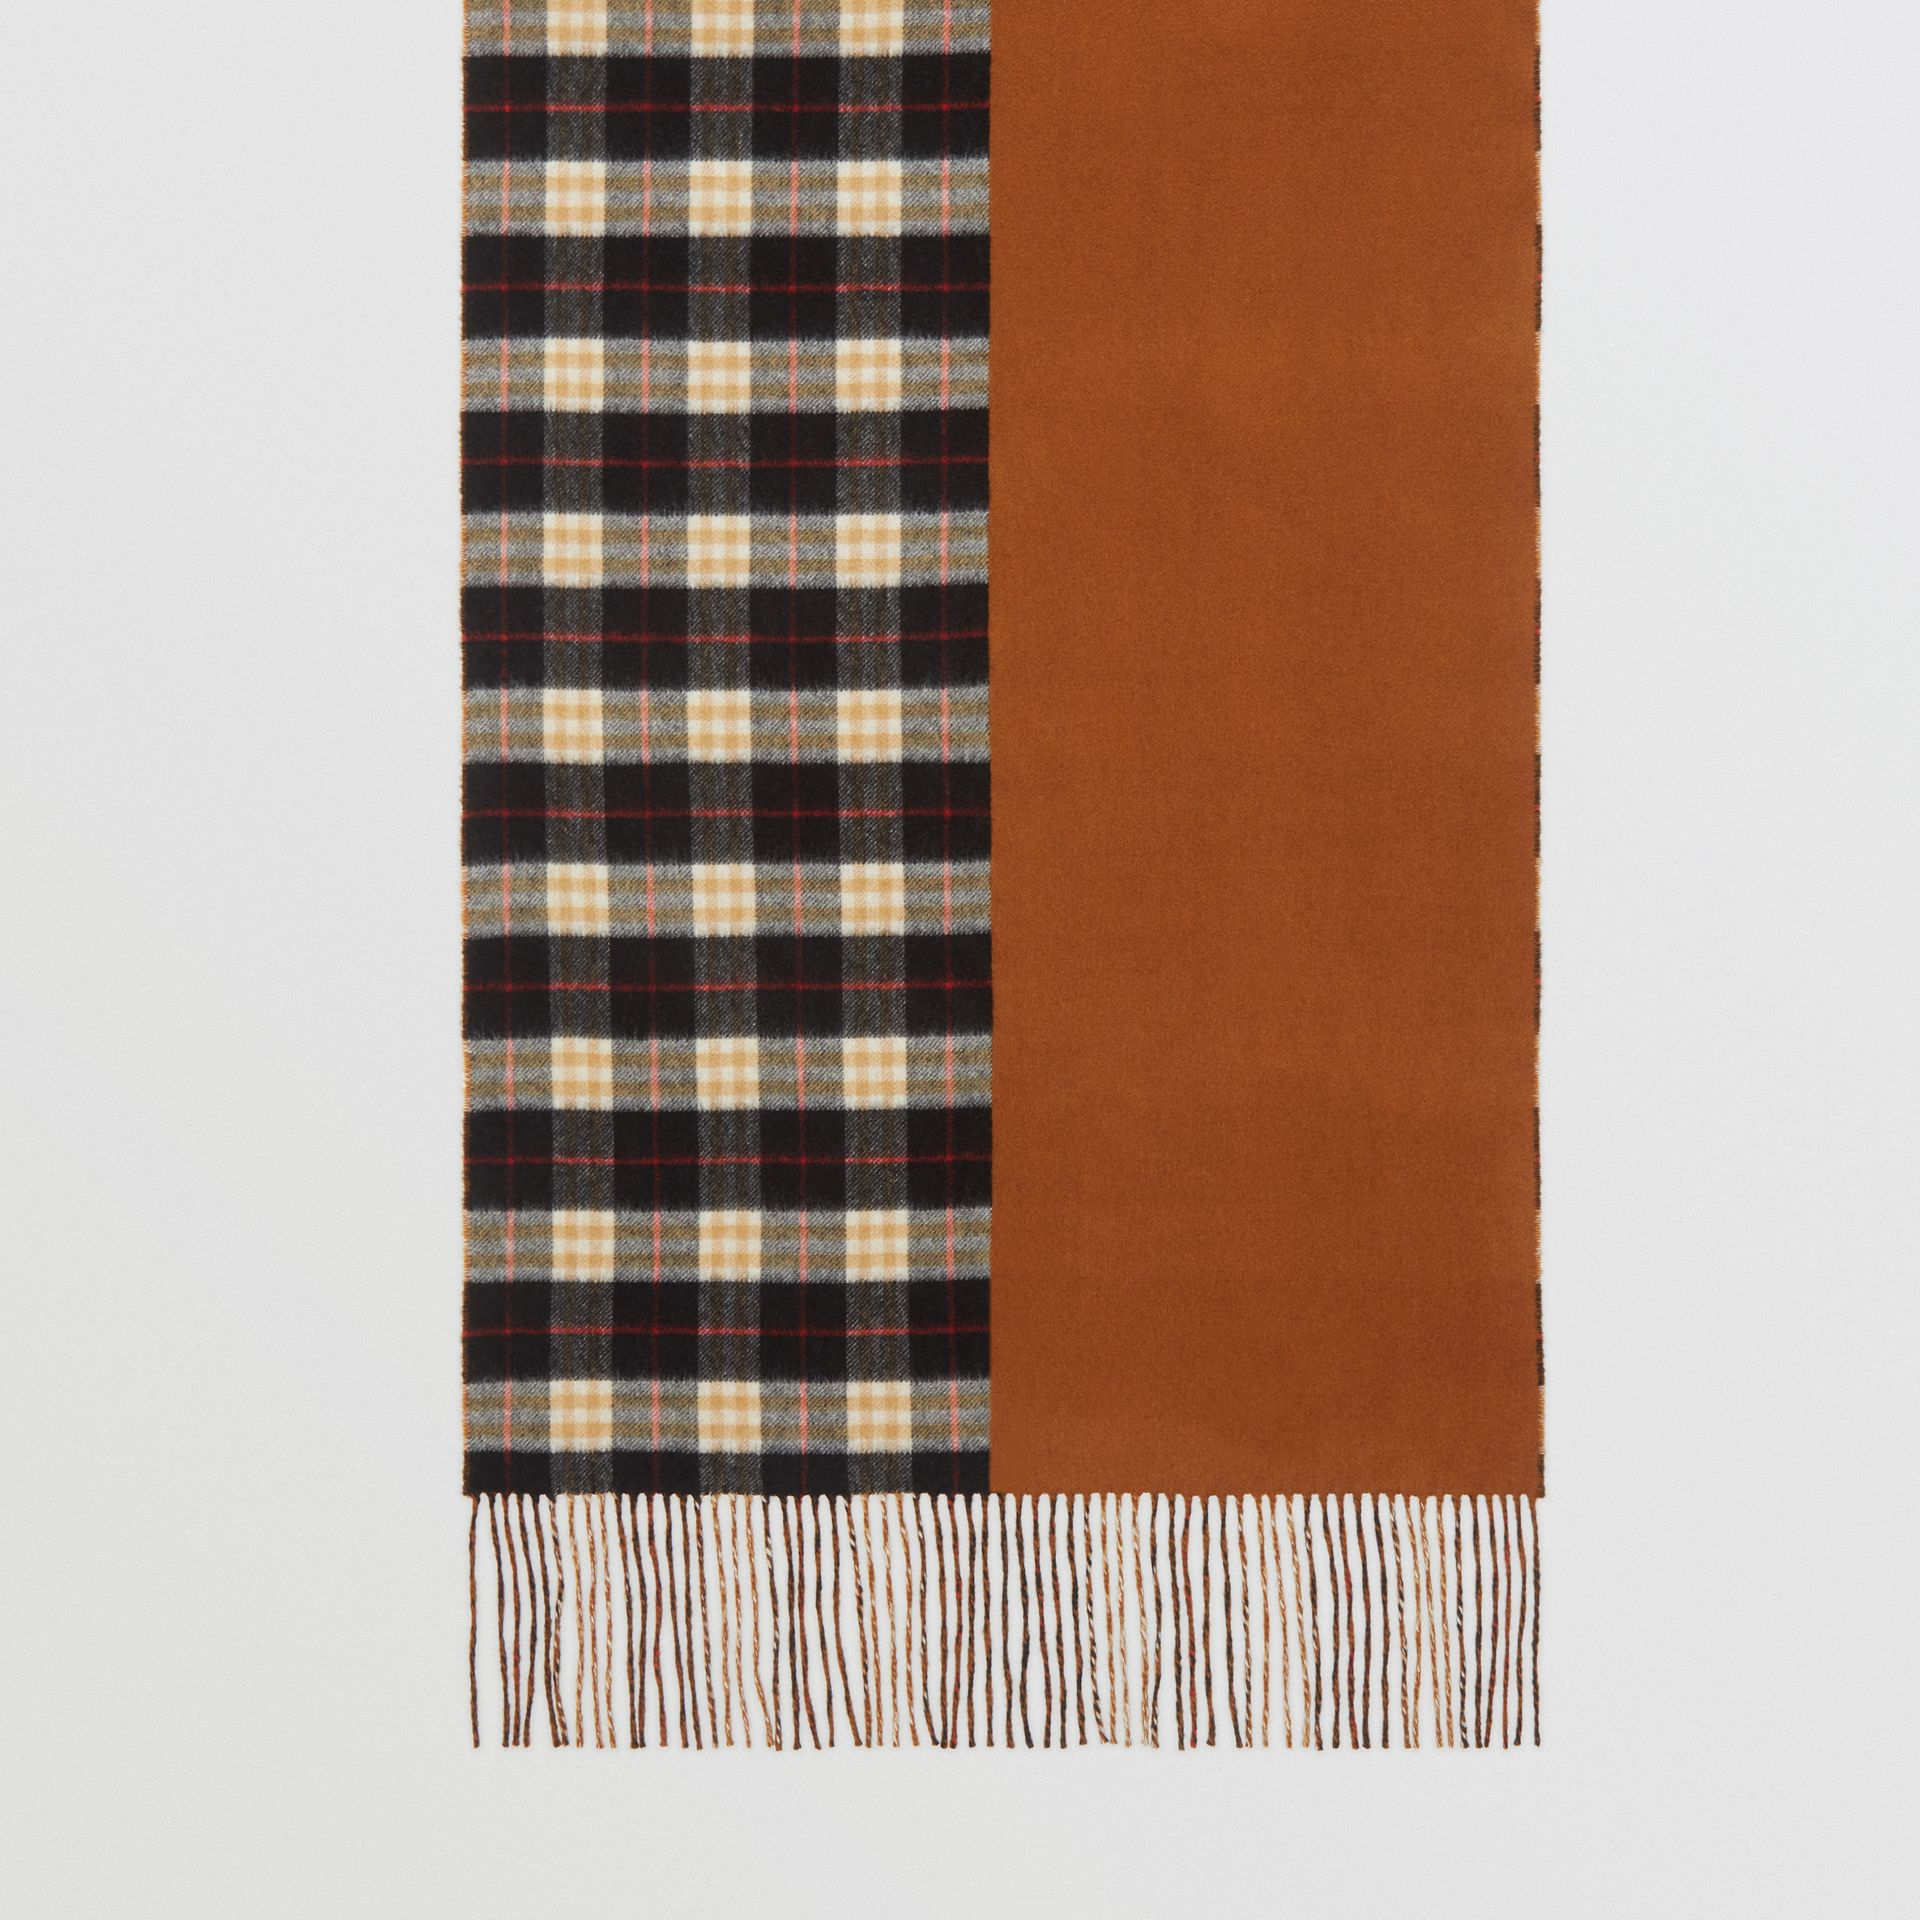 Colour Block Vintage Check Cashmere Scarf in Toffee | Burberry - gallery image 3